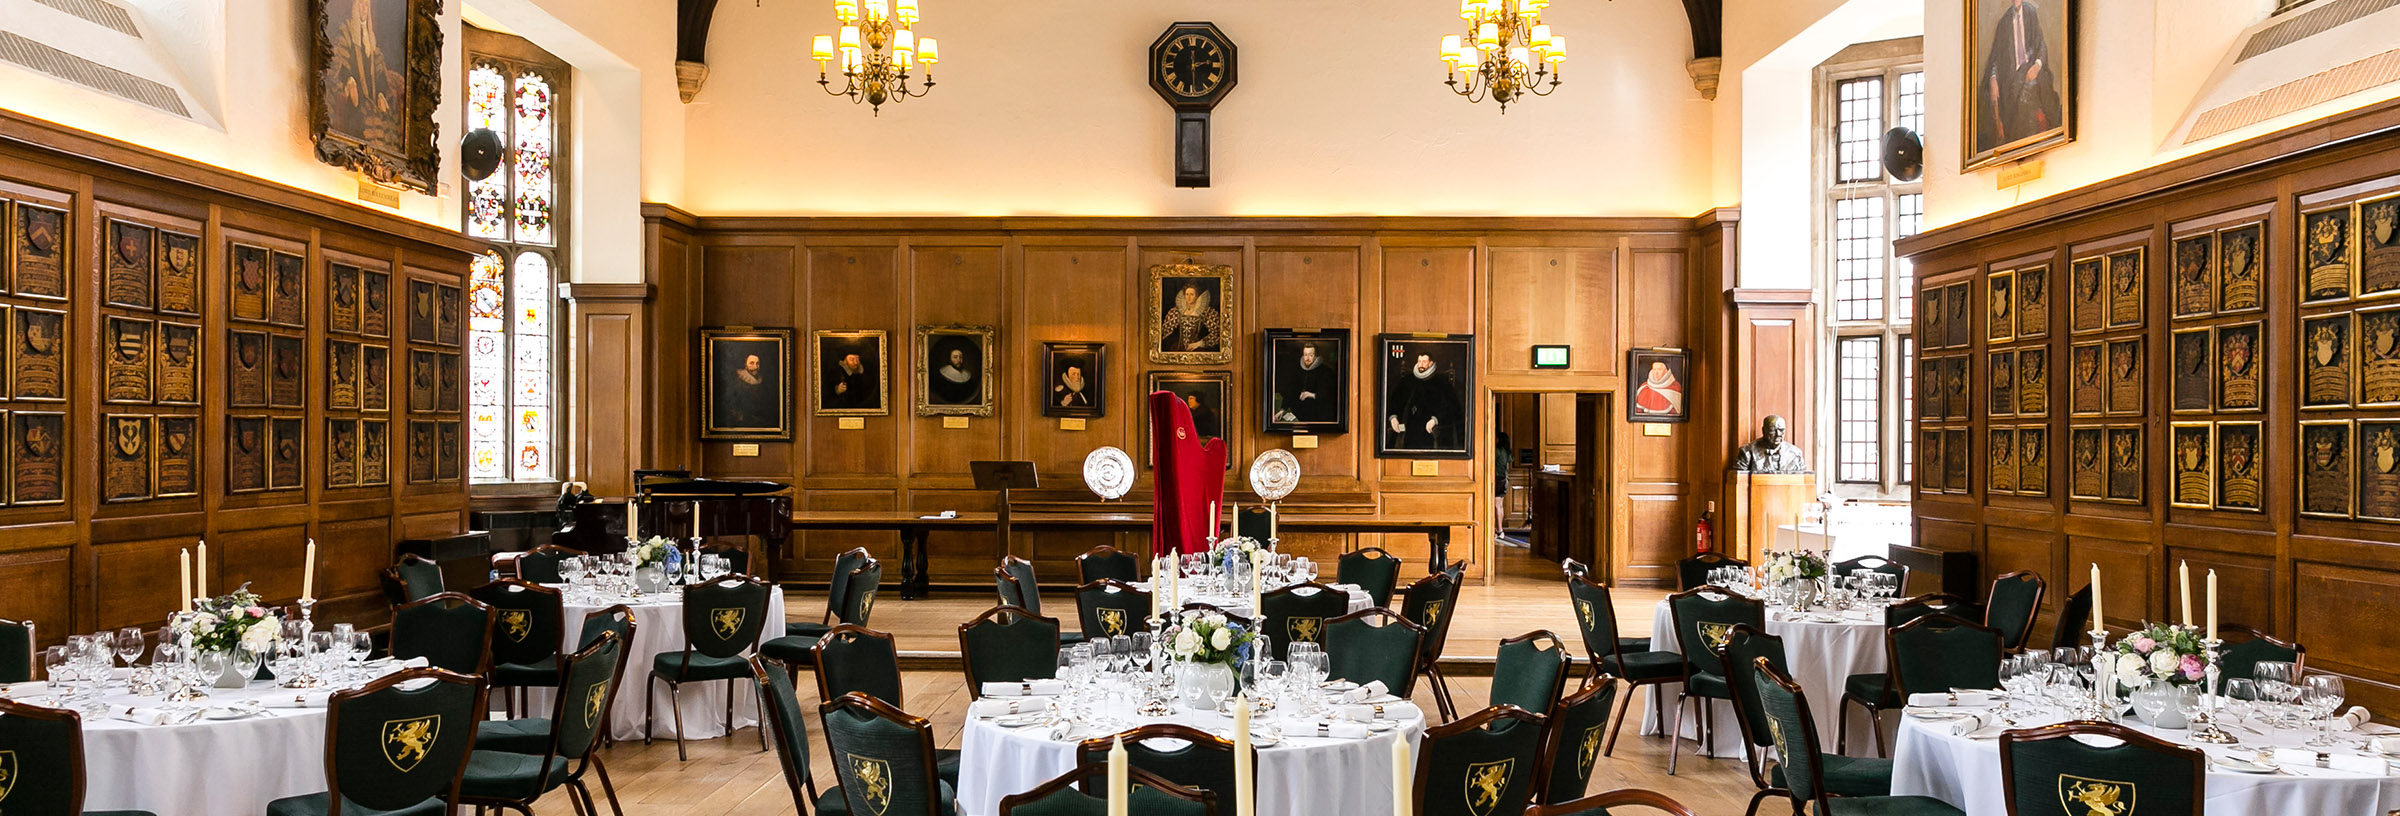 Wedding Special Occasions grays inn banqueting special occasions occasions